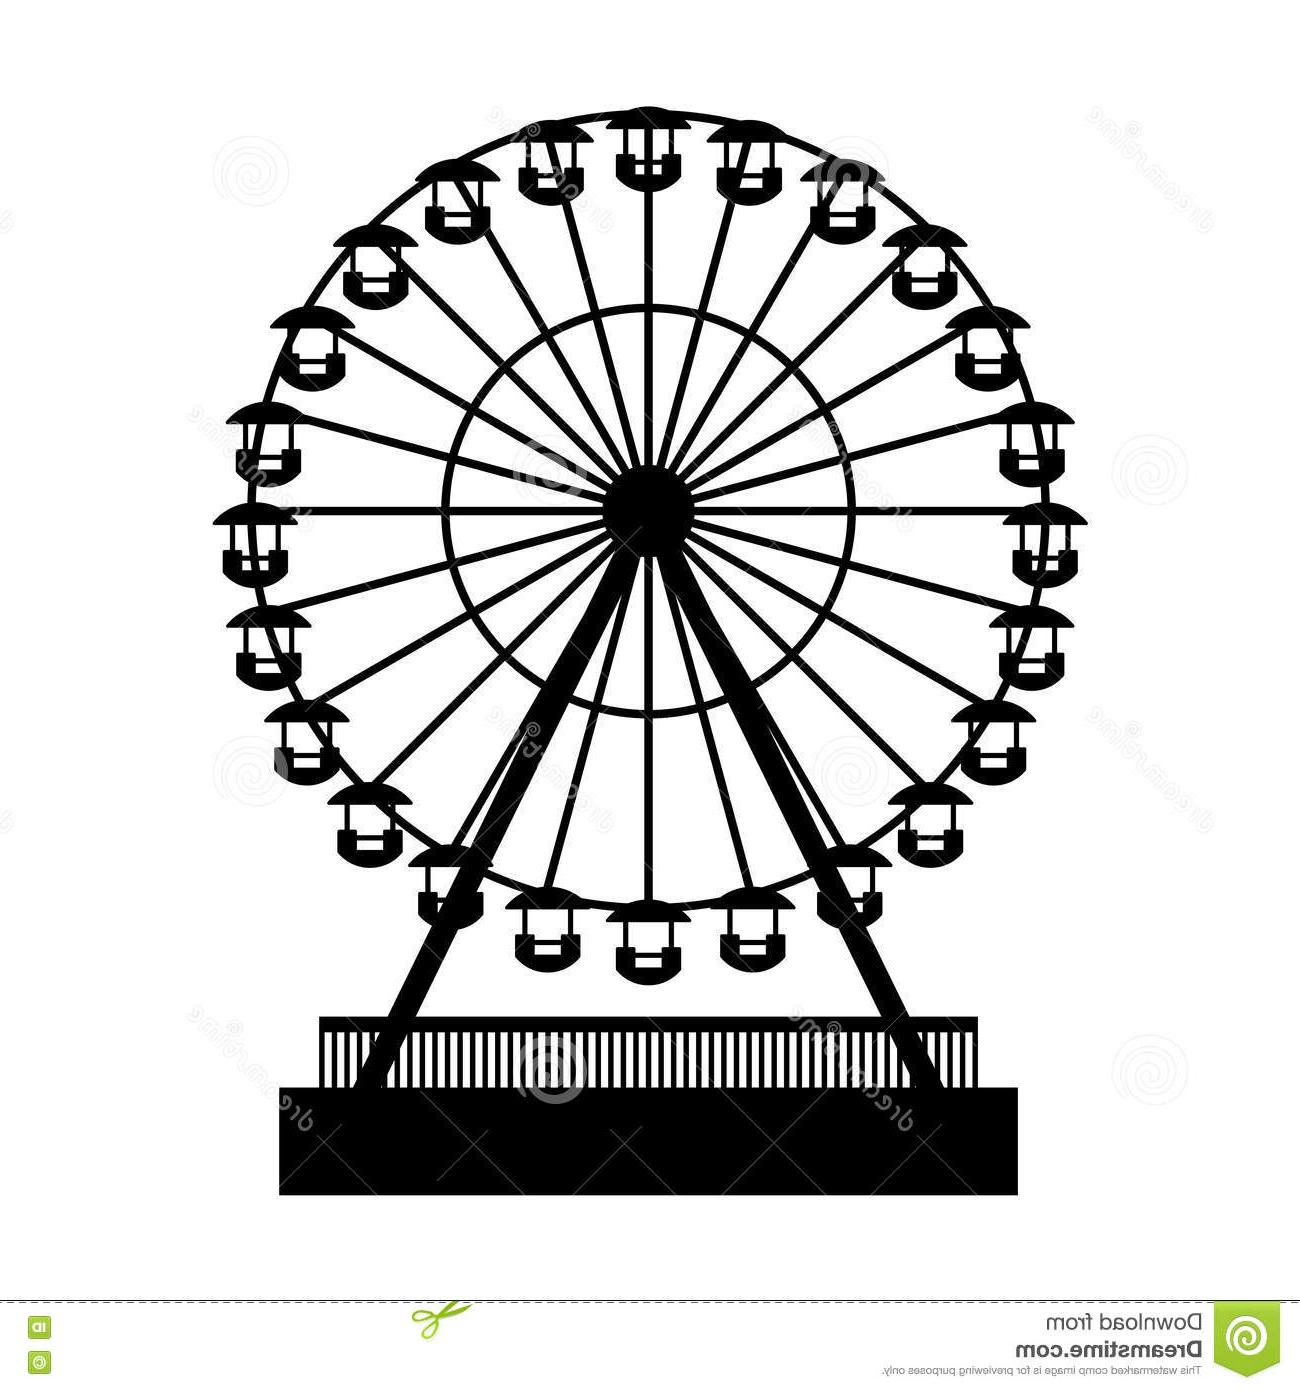 clipart free Vintage ferris wheel clipart. Free download best